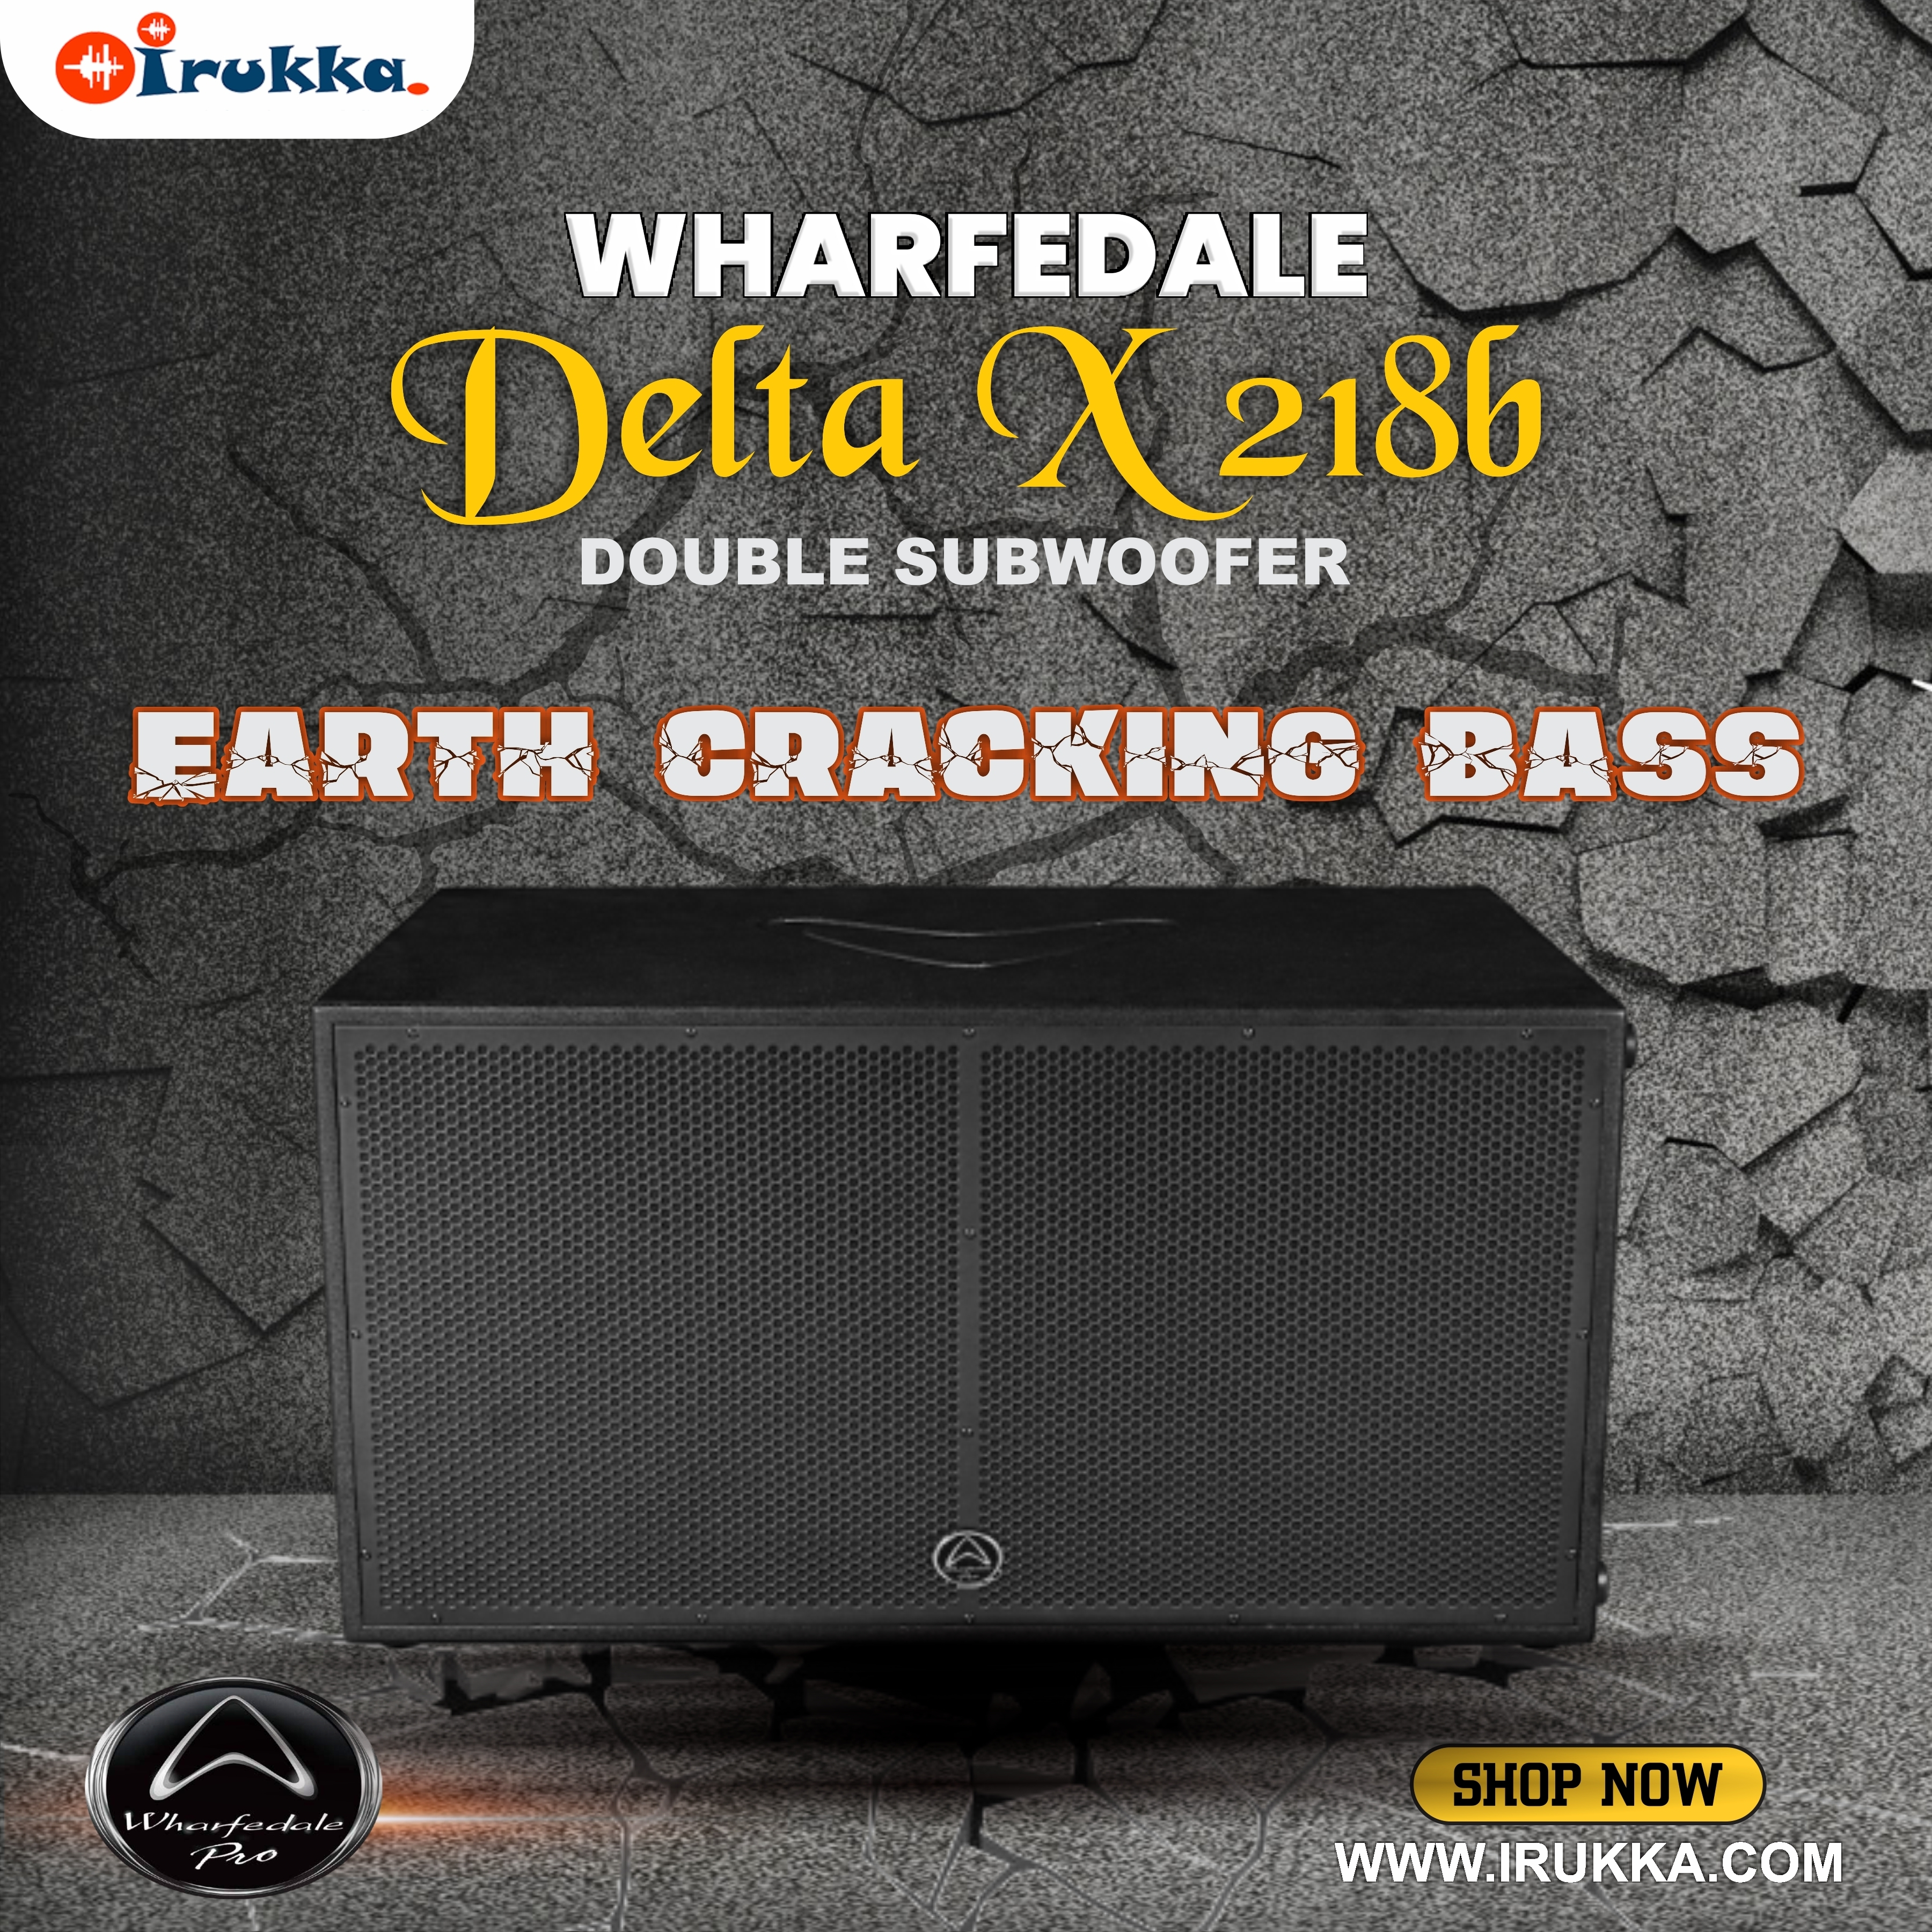 BEATS THAT MAKES THE WORLD RUMBLE When the Beats of the delta X218b drops